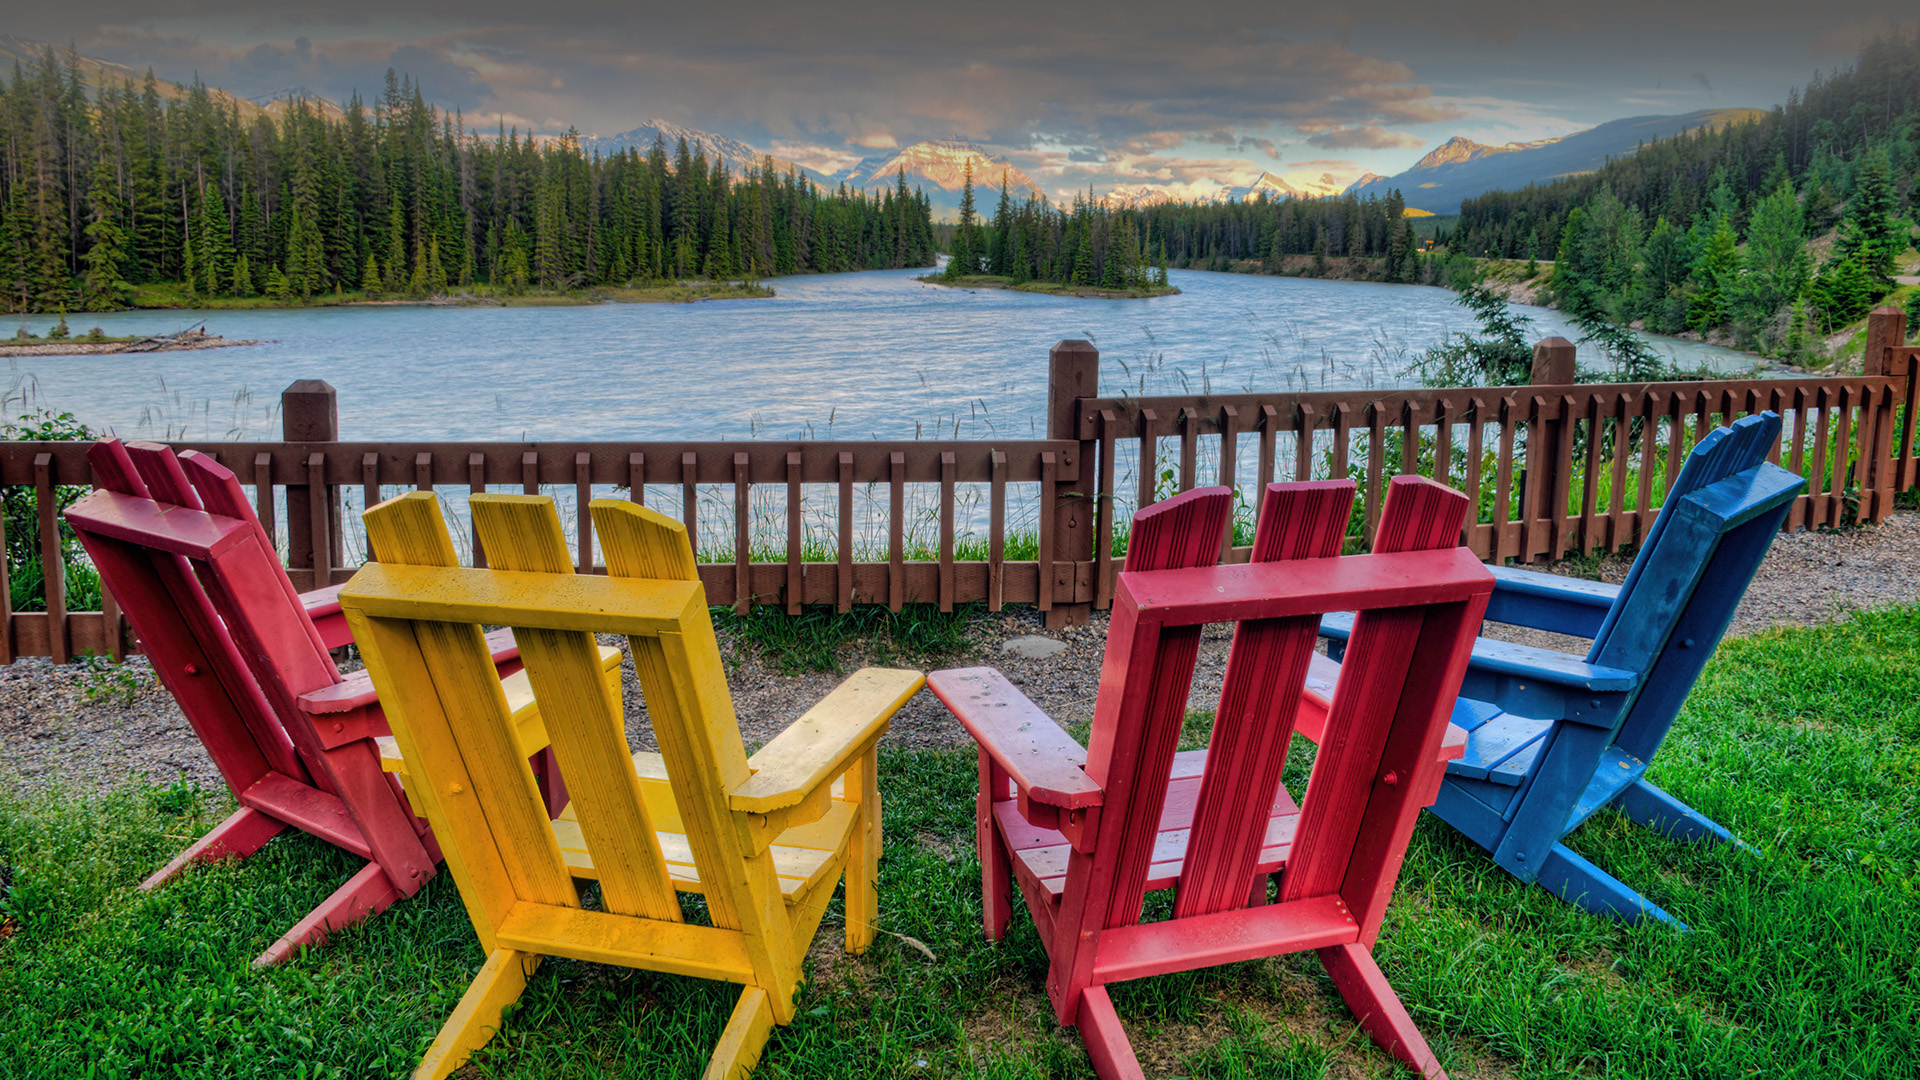 Adirondack Chairs And The Athabasca River, Jasper National